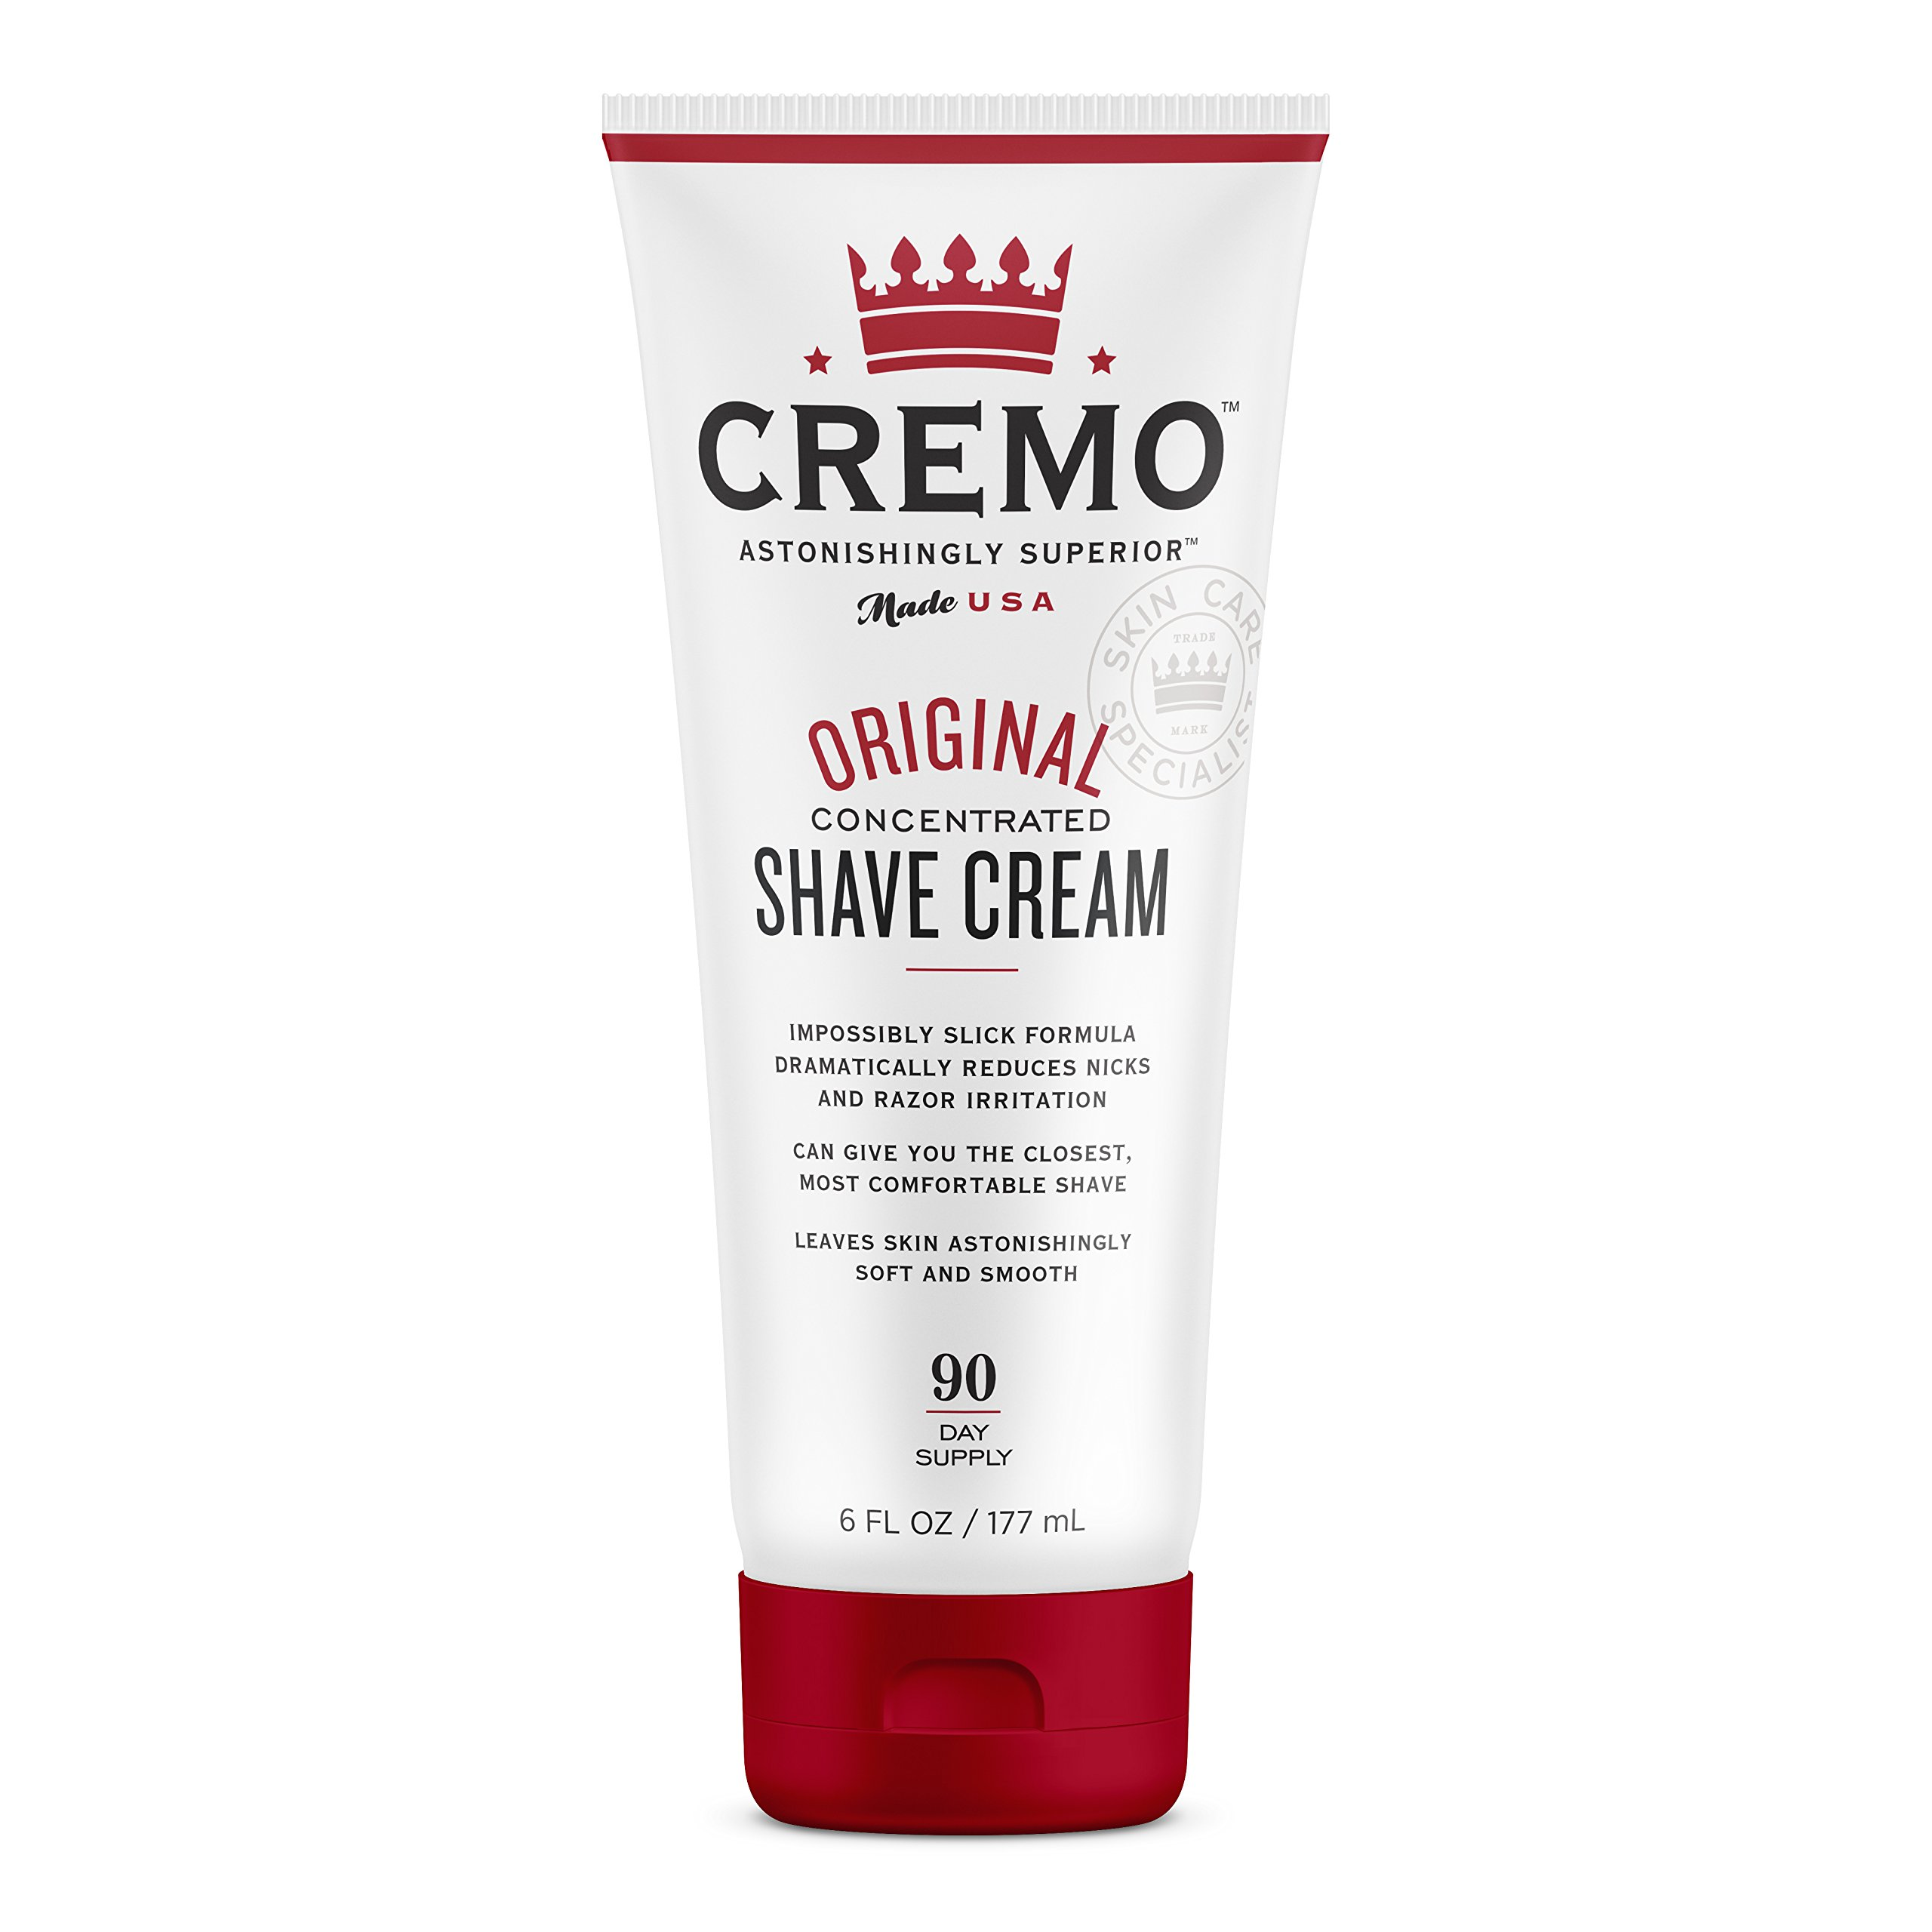 Cremo Original Shave Cream, Astonishingly Superior Smooth Shaving Cream Fights Nicks, Cuts And Razor Burn, 6 Ounces